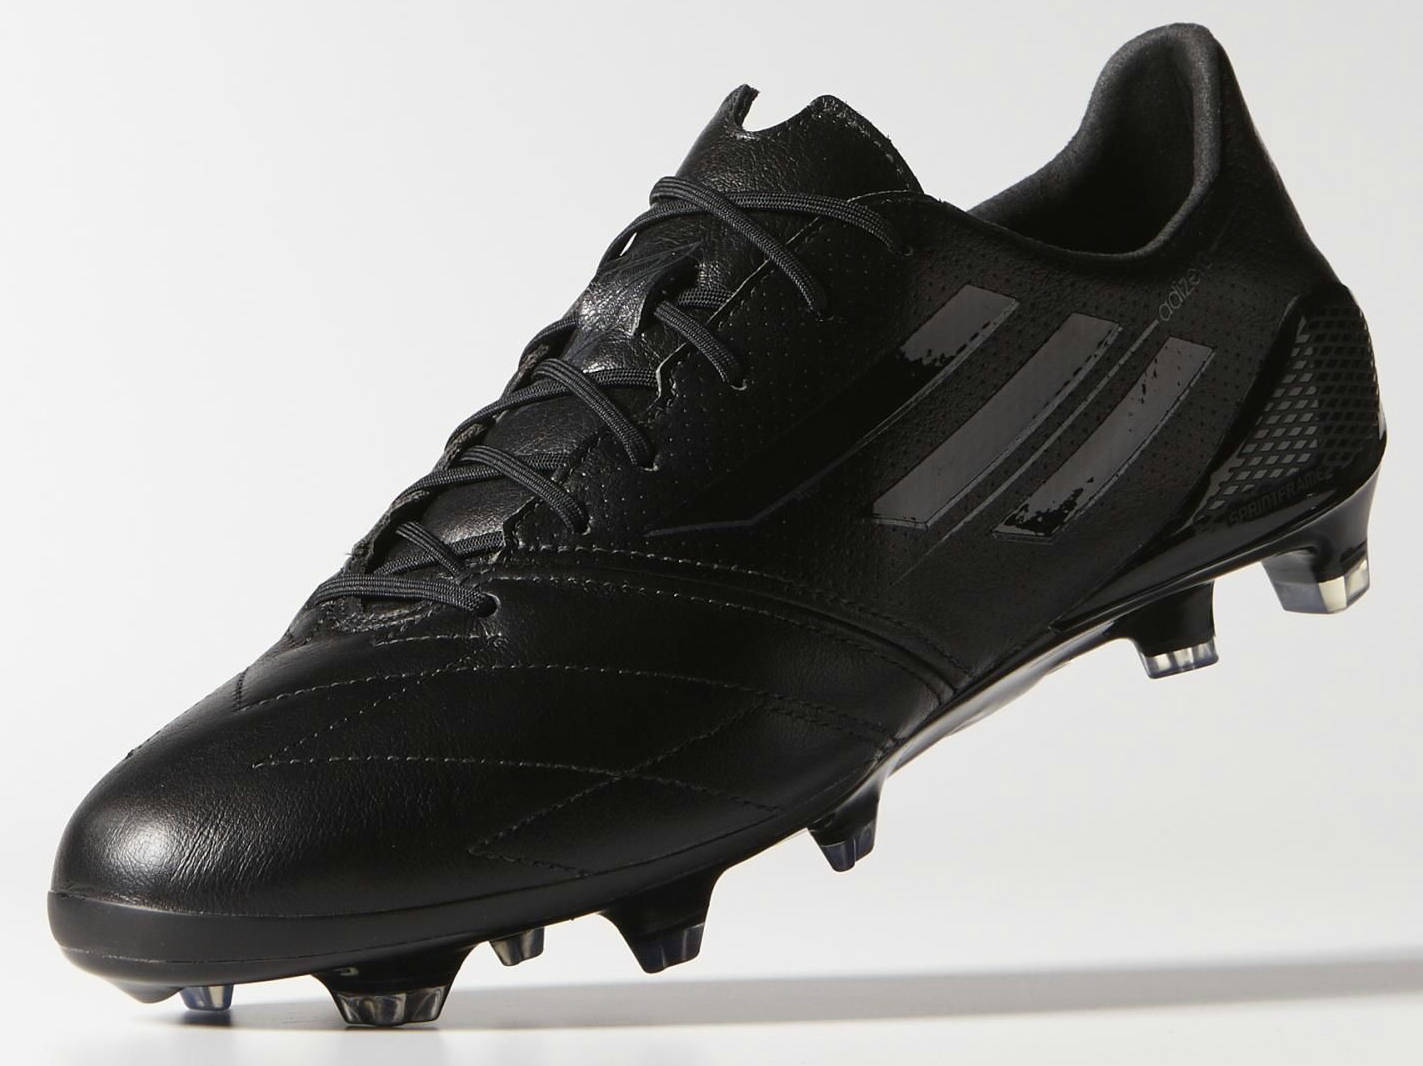 adidas adizero f50 leather blackout 2014